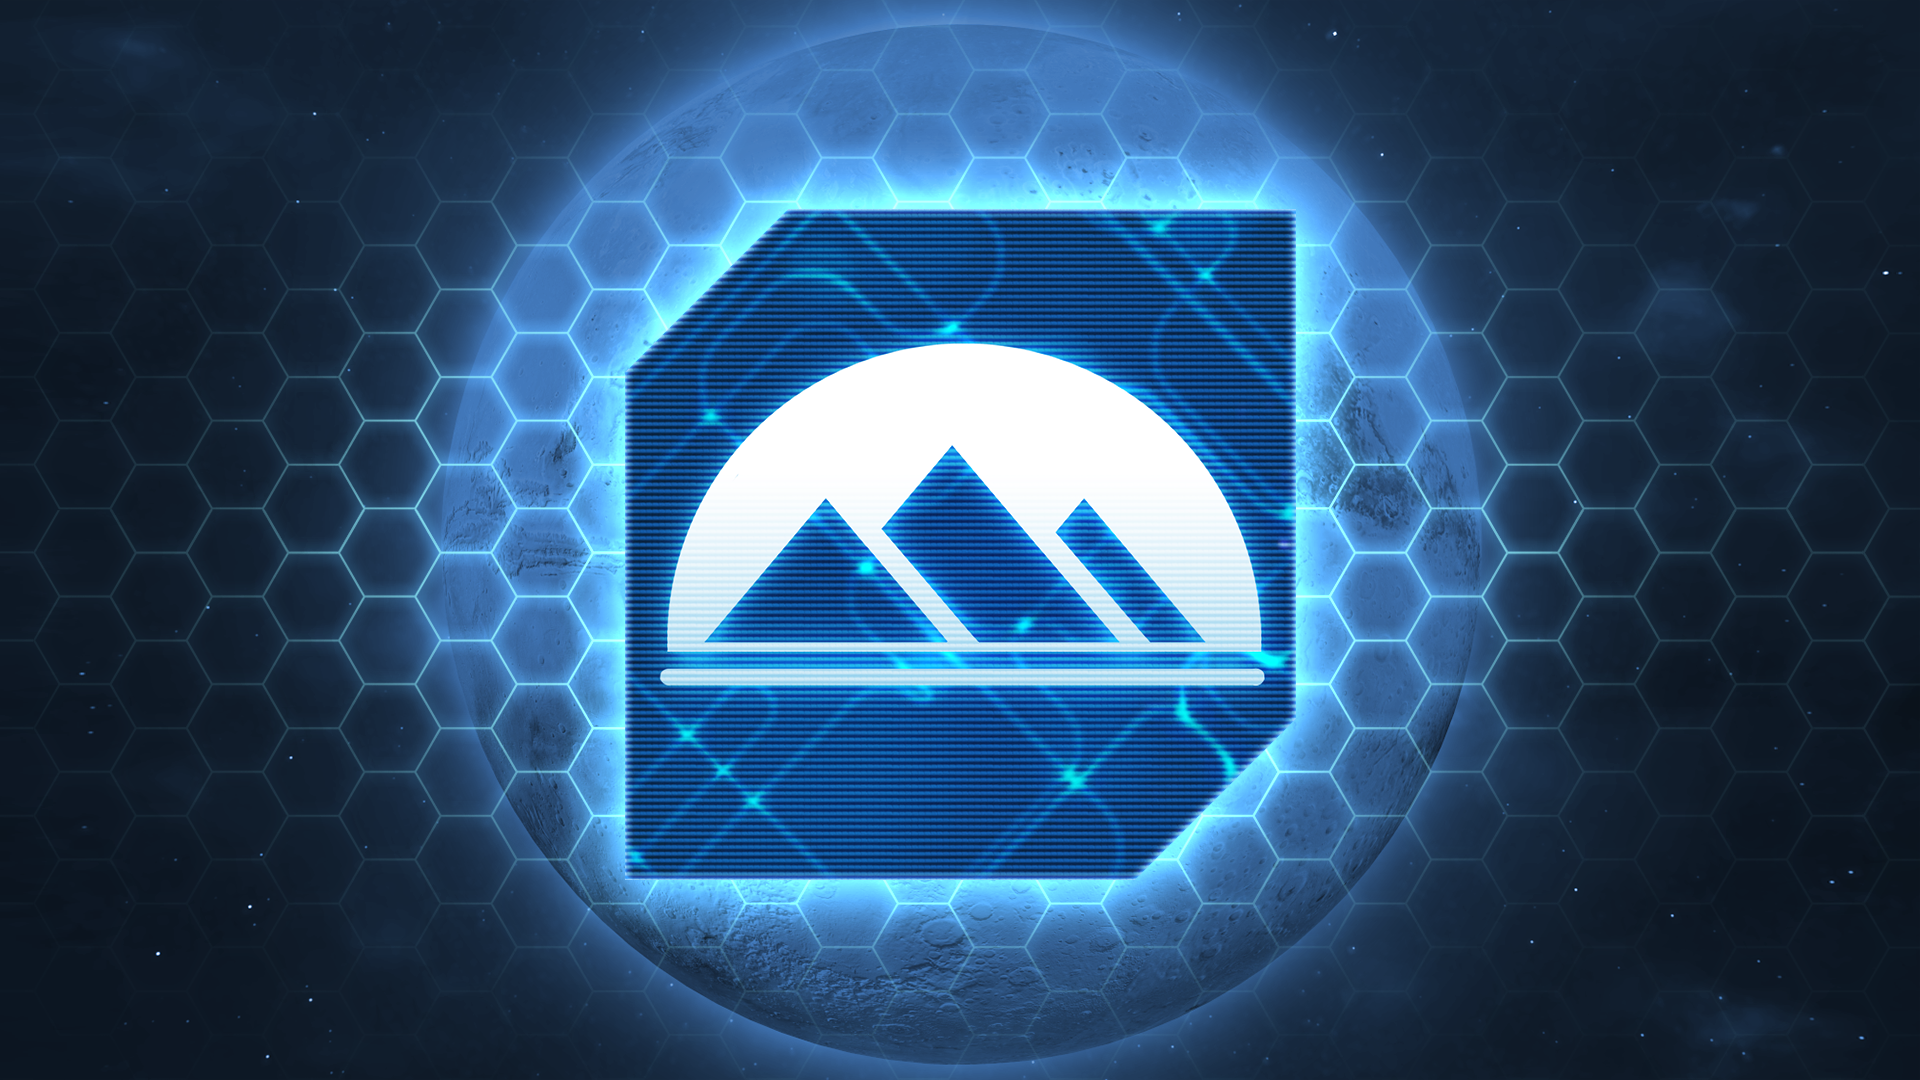 Icon for The New Wonders of the World